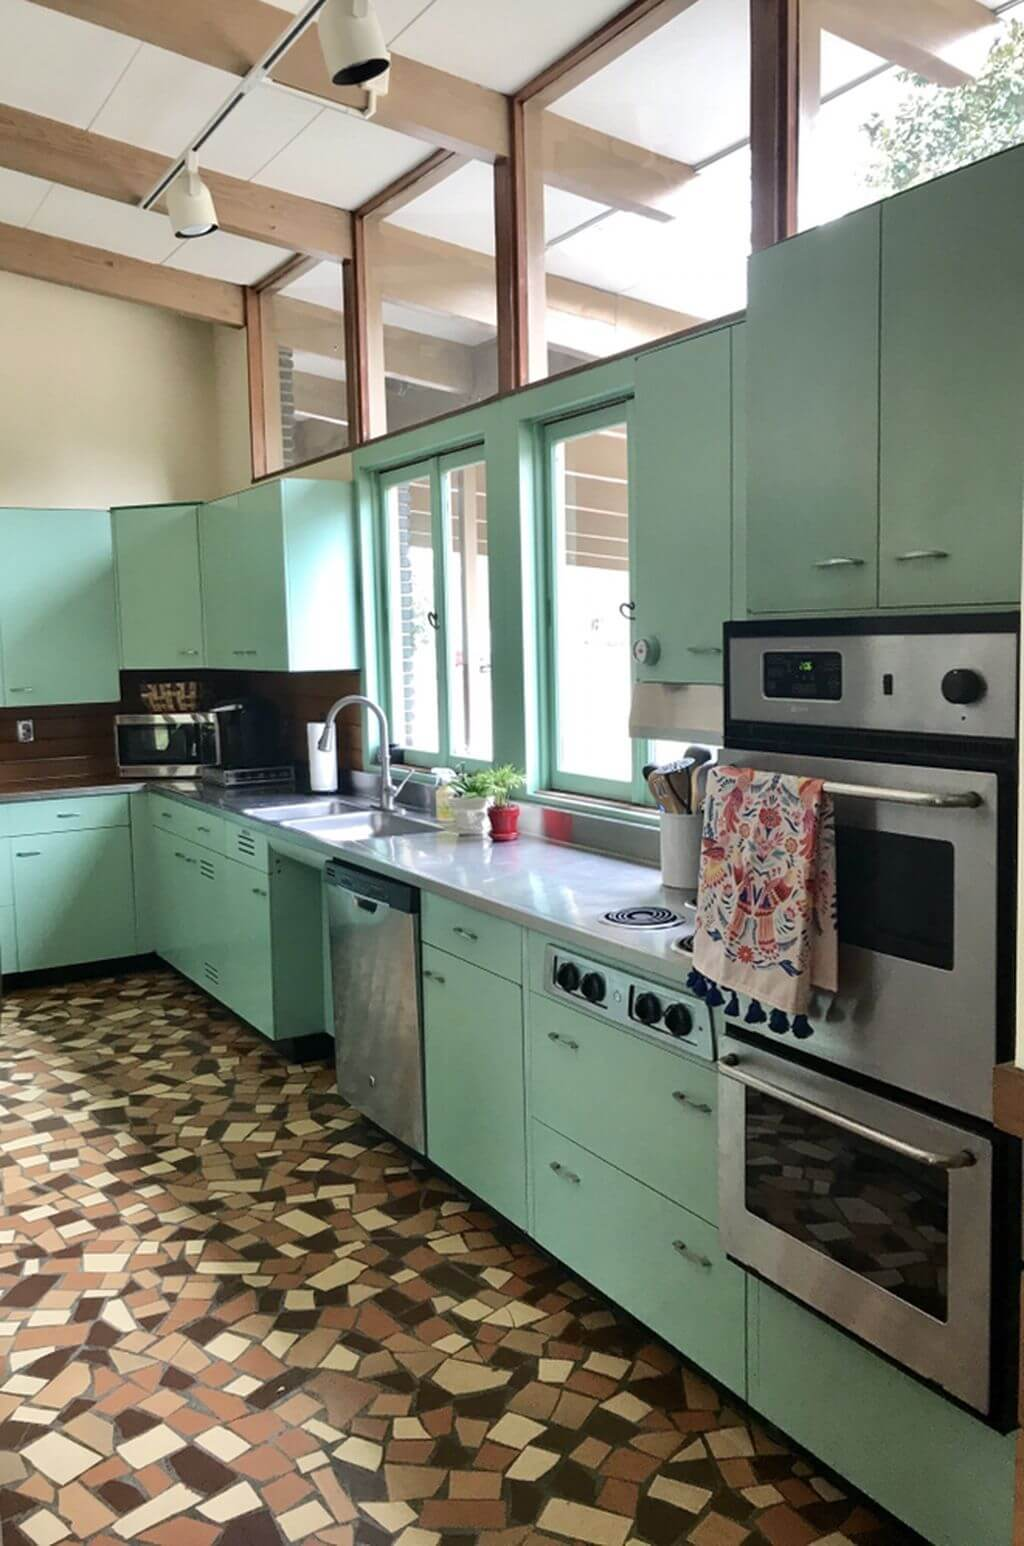 25 Mid Century Modern Kitchen Ideas To Beautify Your Cooking Area - 2D1462Ef824502Aa3Ebdf0Cf8776Bff6